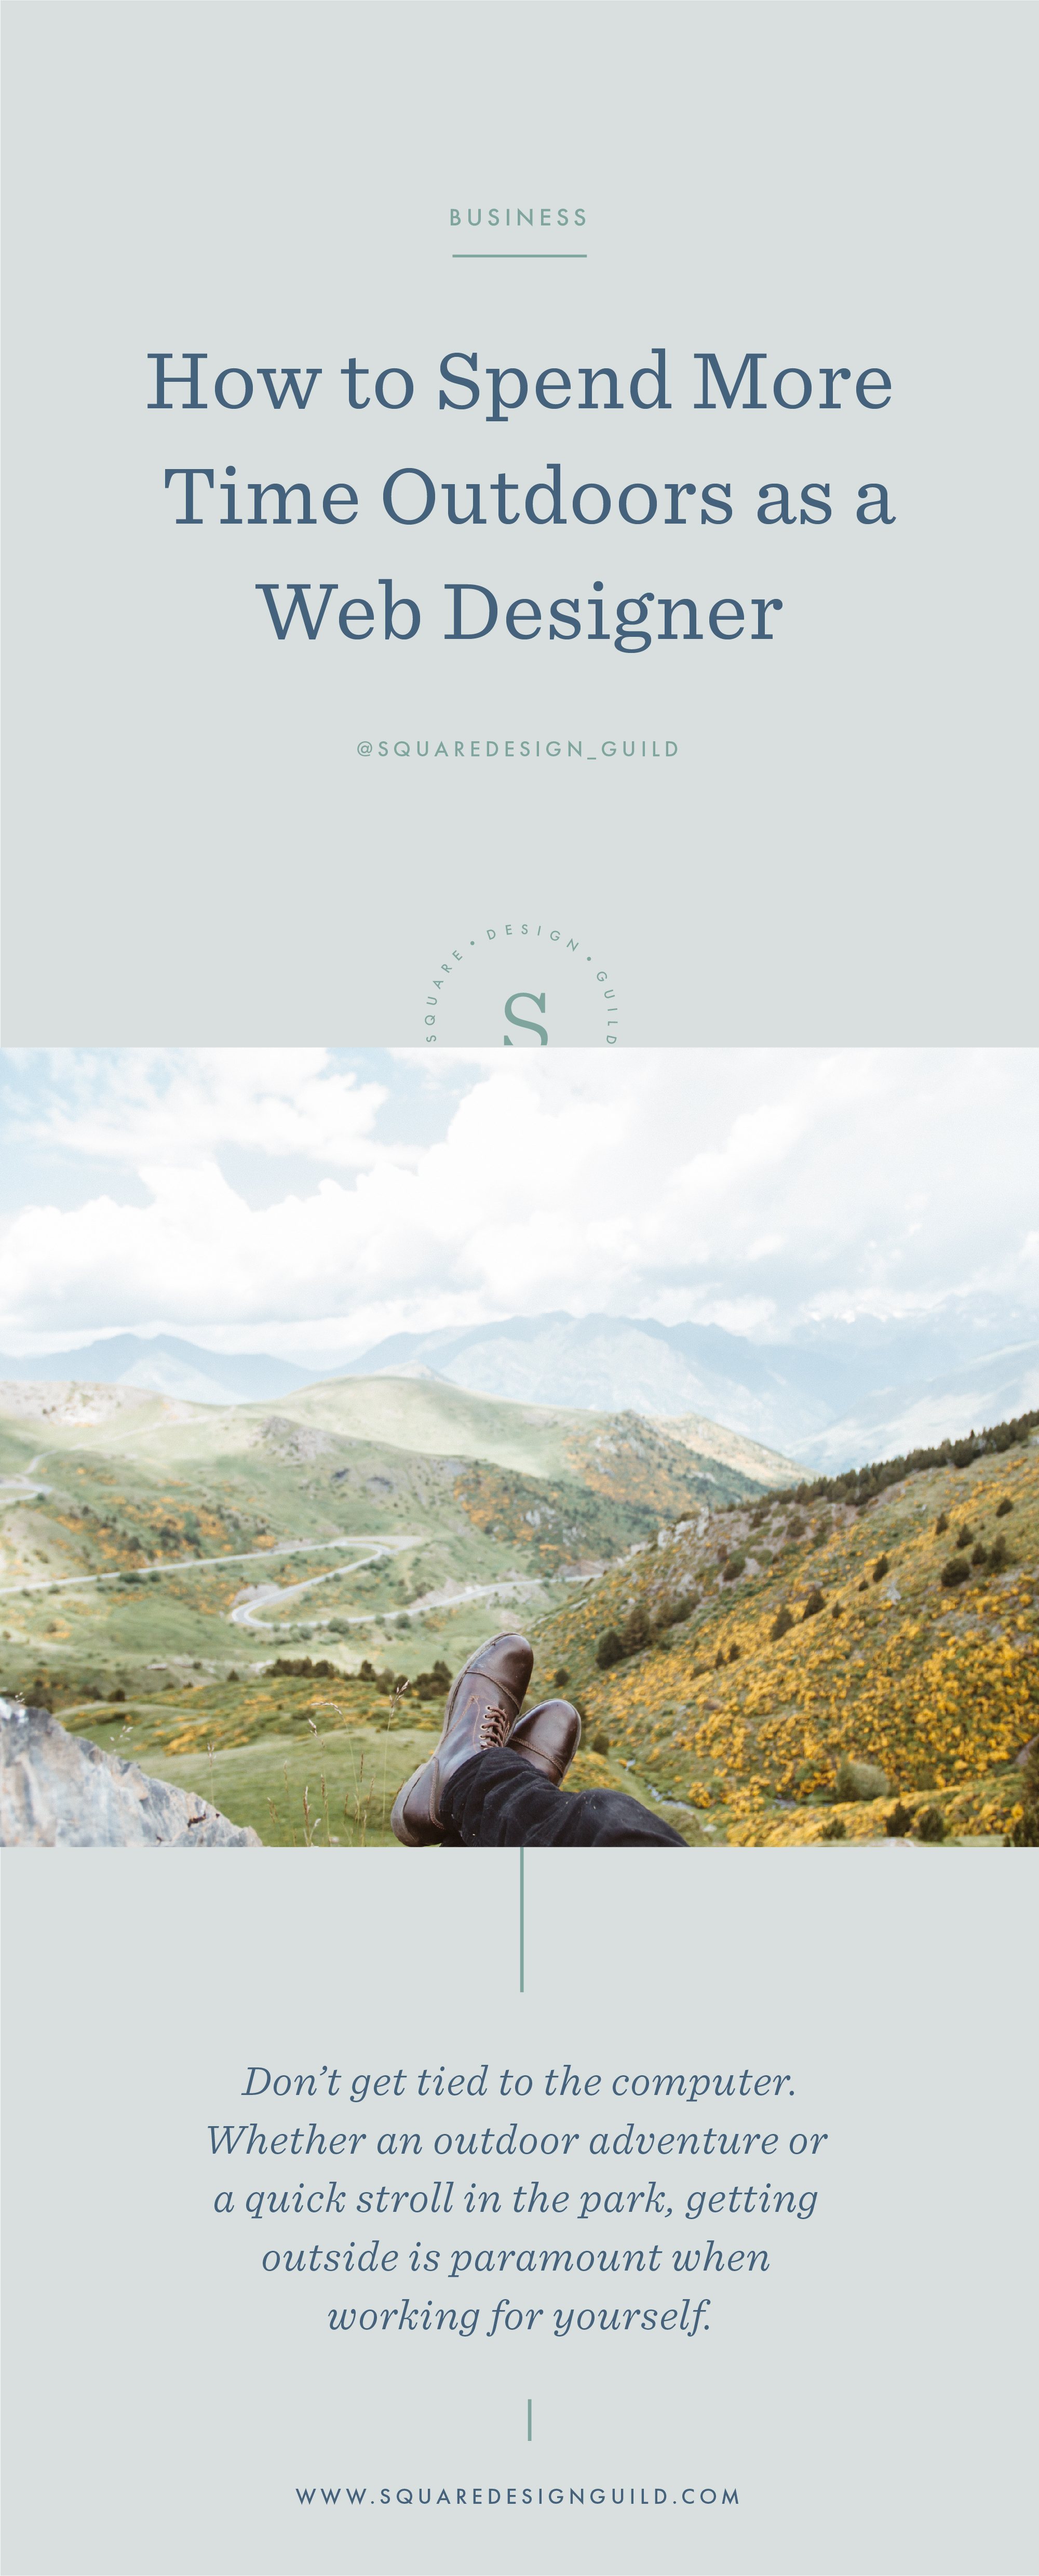 Square Design Guild   How to Spend More Time Outdoors as a Web Designer